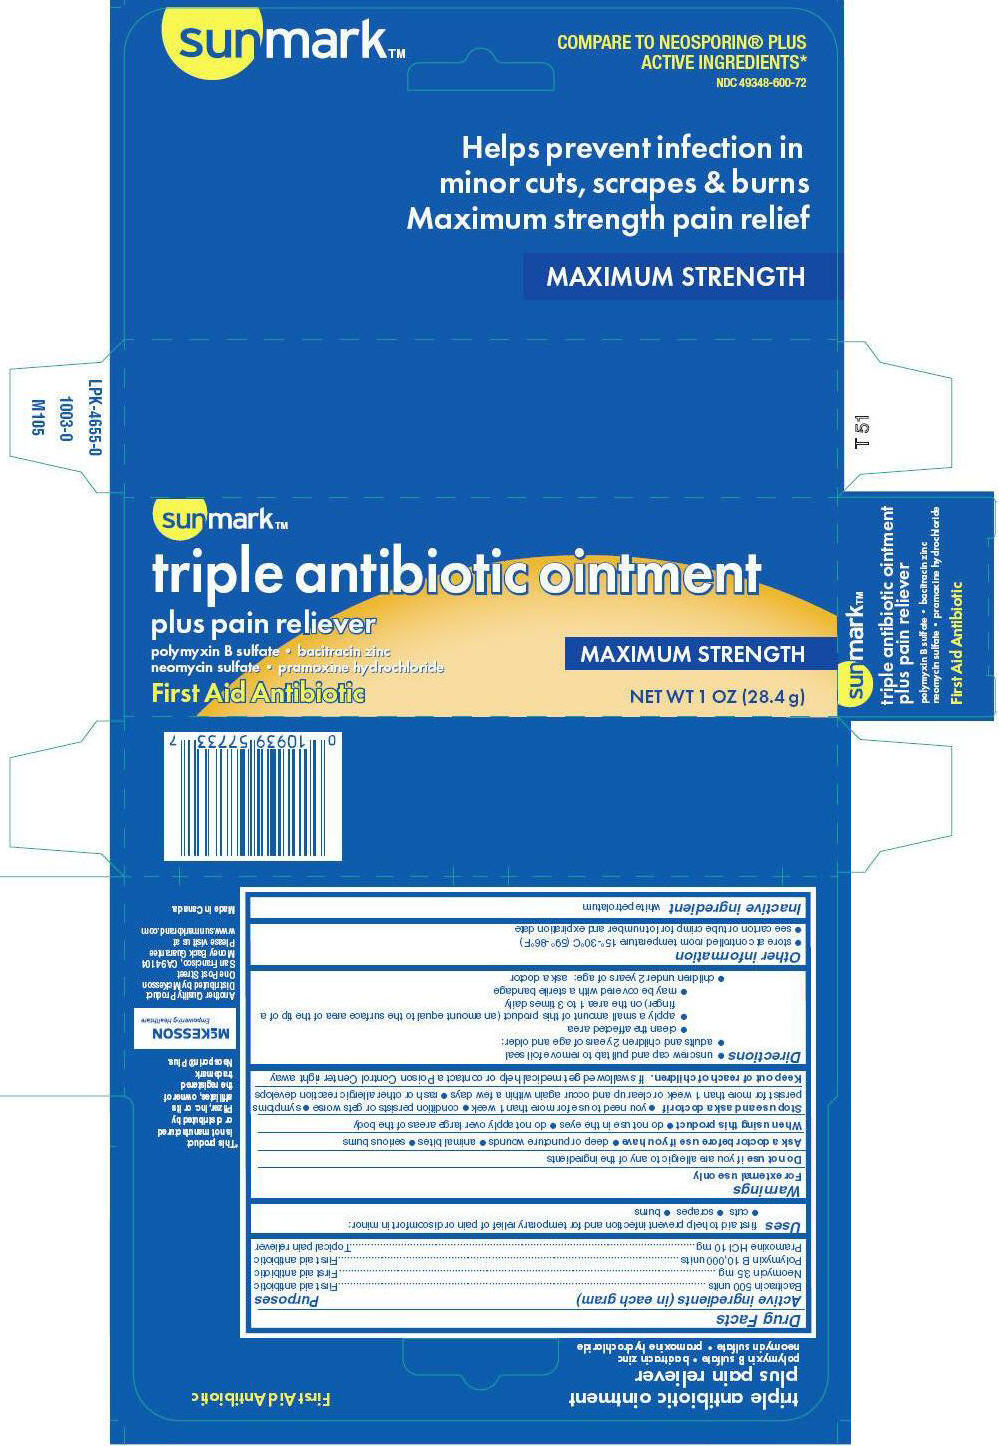 Sunmark Triple Antibiotic Plus Pain Relief (Polymyxin B Sulfate, Bacitracin Zinc, Neomycin Sulfate, And Pramoxine Hydrochloride) Ointment [Mckesson]